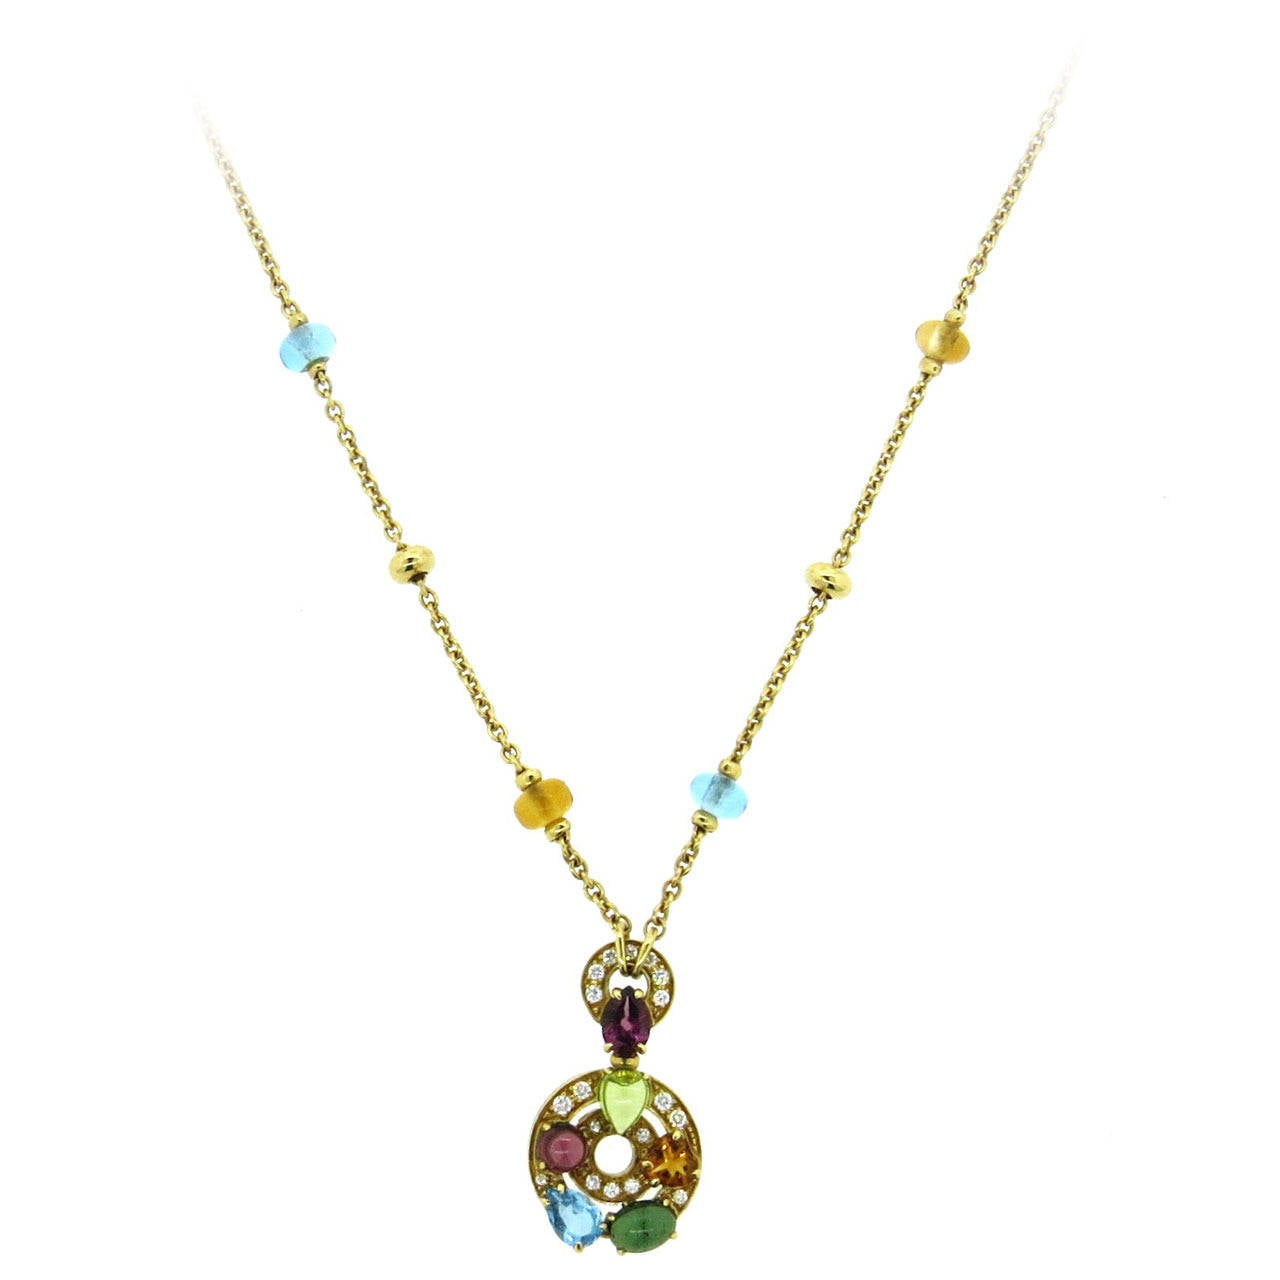 Bulgari Astrale Gem Set Diamond Gold Pendant Necklace